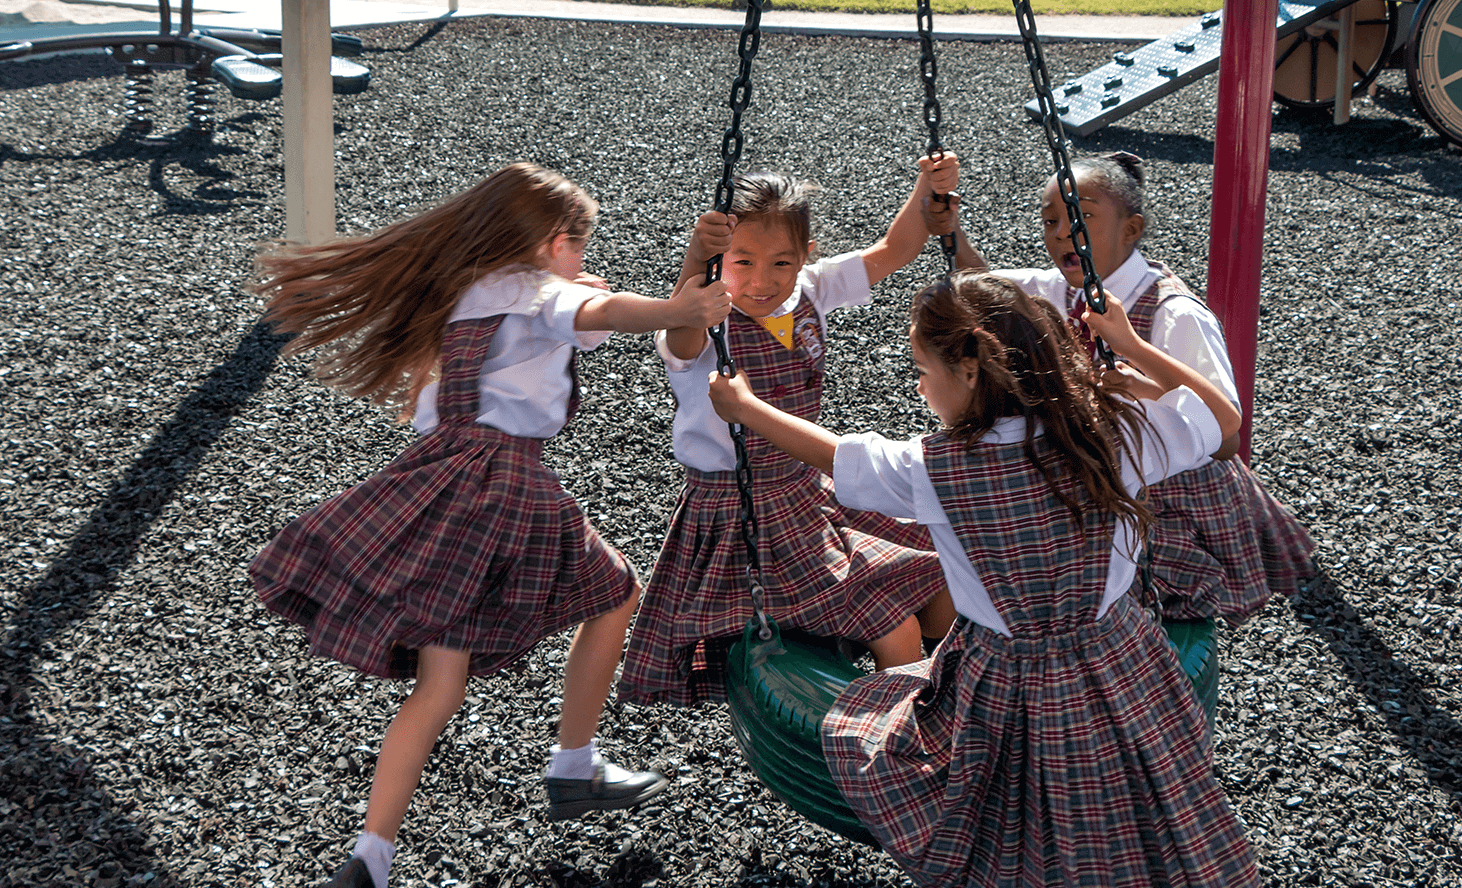 Elementary School Playground | Challenger School - Summerlin | Private School In Las Vegas, Nevada